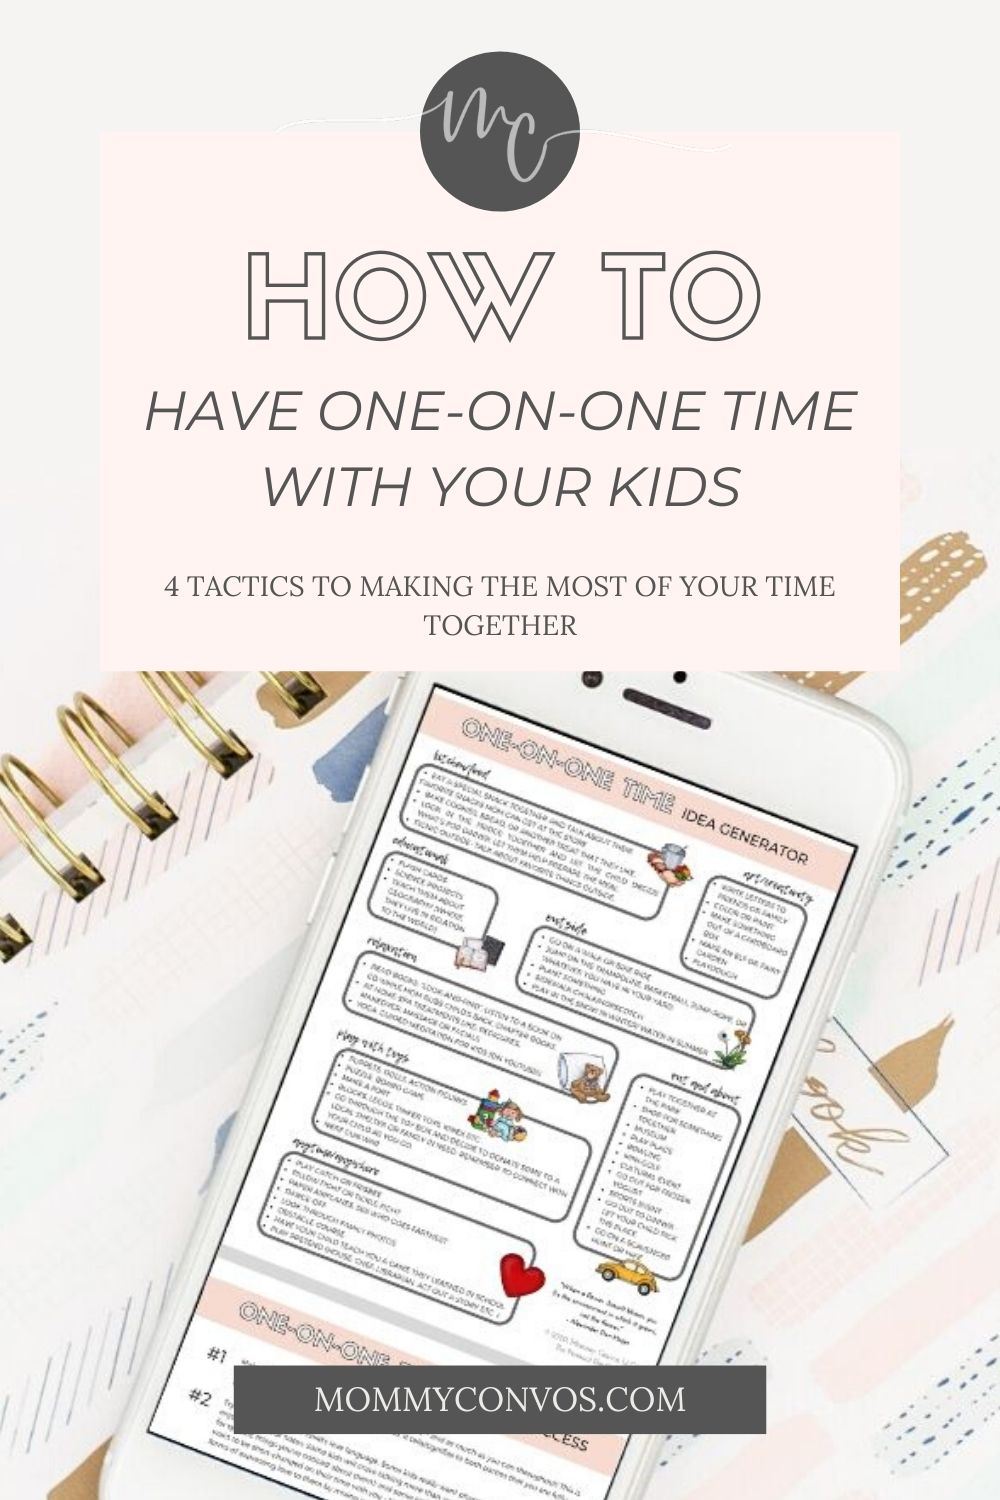 "GREAT advice for starting some 1-on-1 time with your kids. The Why, the HOW, and great printables to make it a success! 1) an activity idea generator to find quality things to do together, top 10 tips for successful ""special time"""